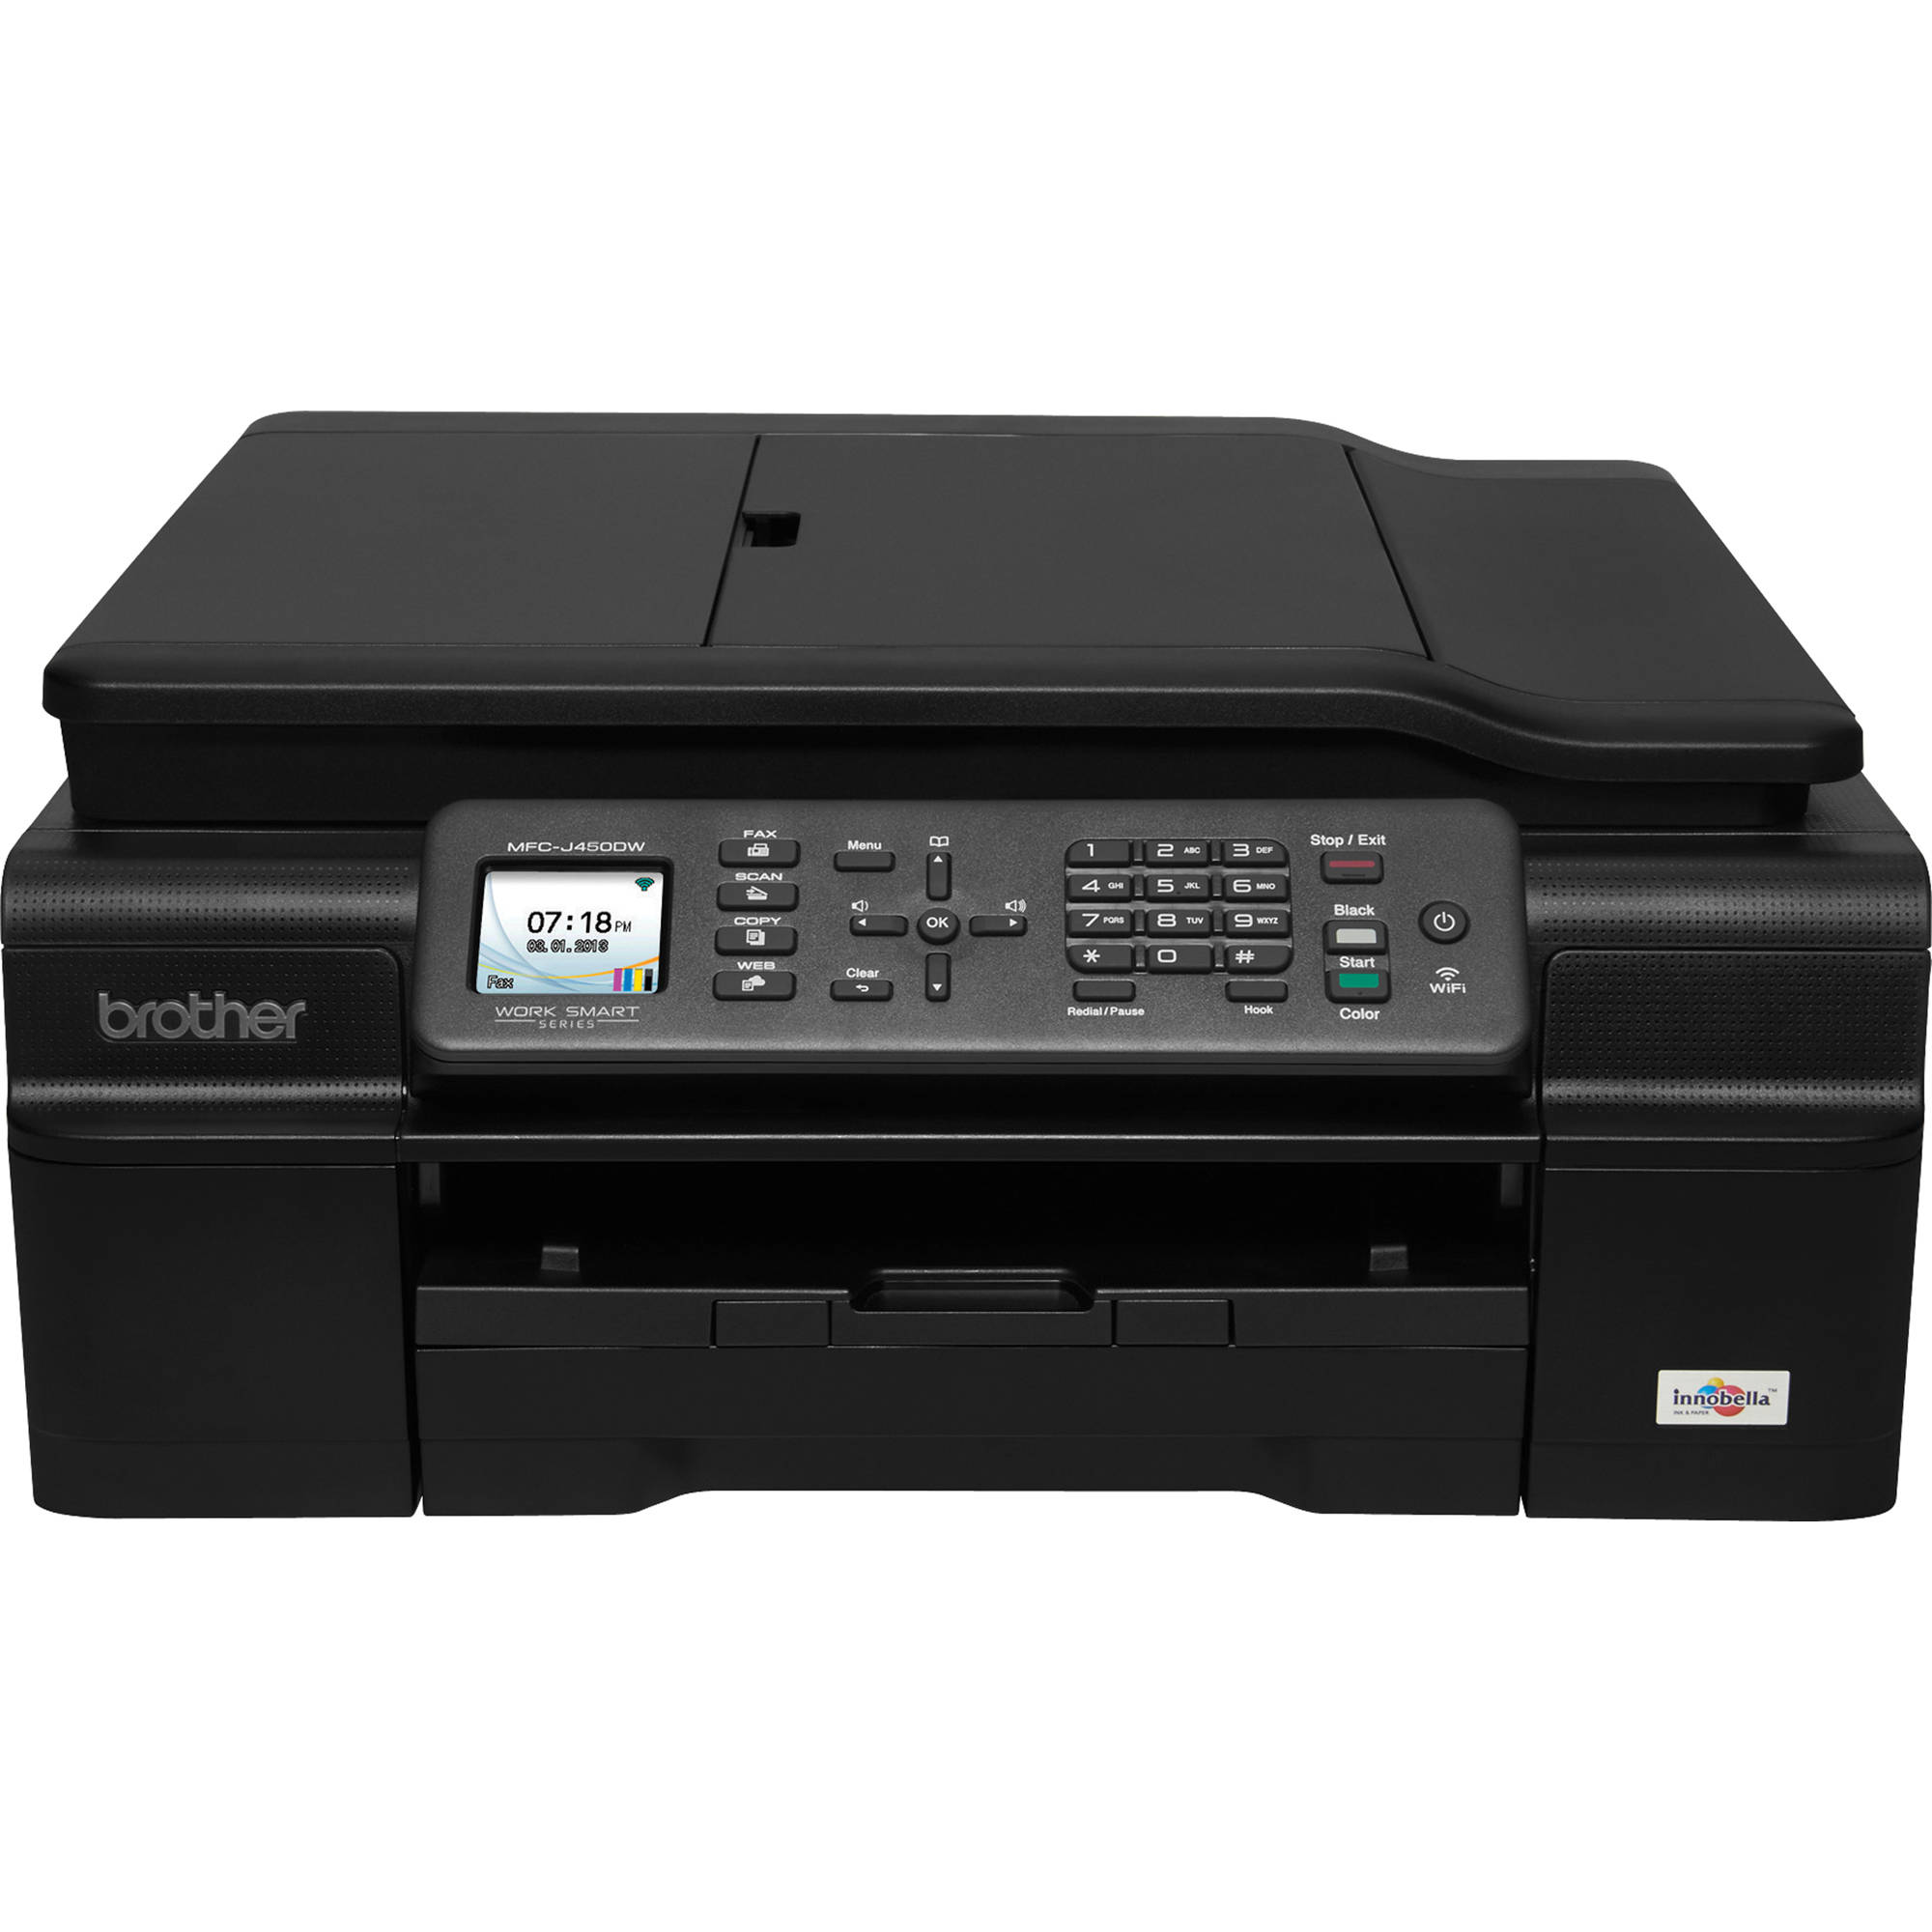 Brother MFC J450dw Wireless Color All In One Inkjet MFC J450DW